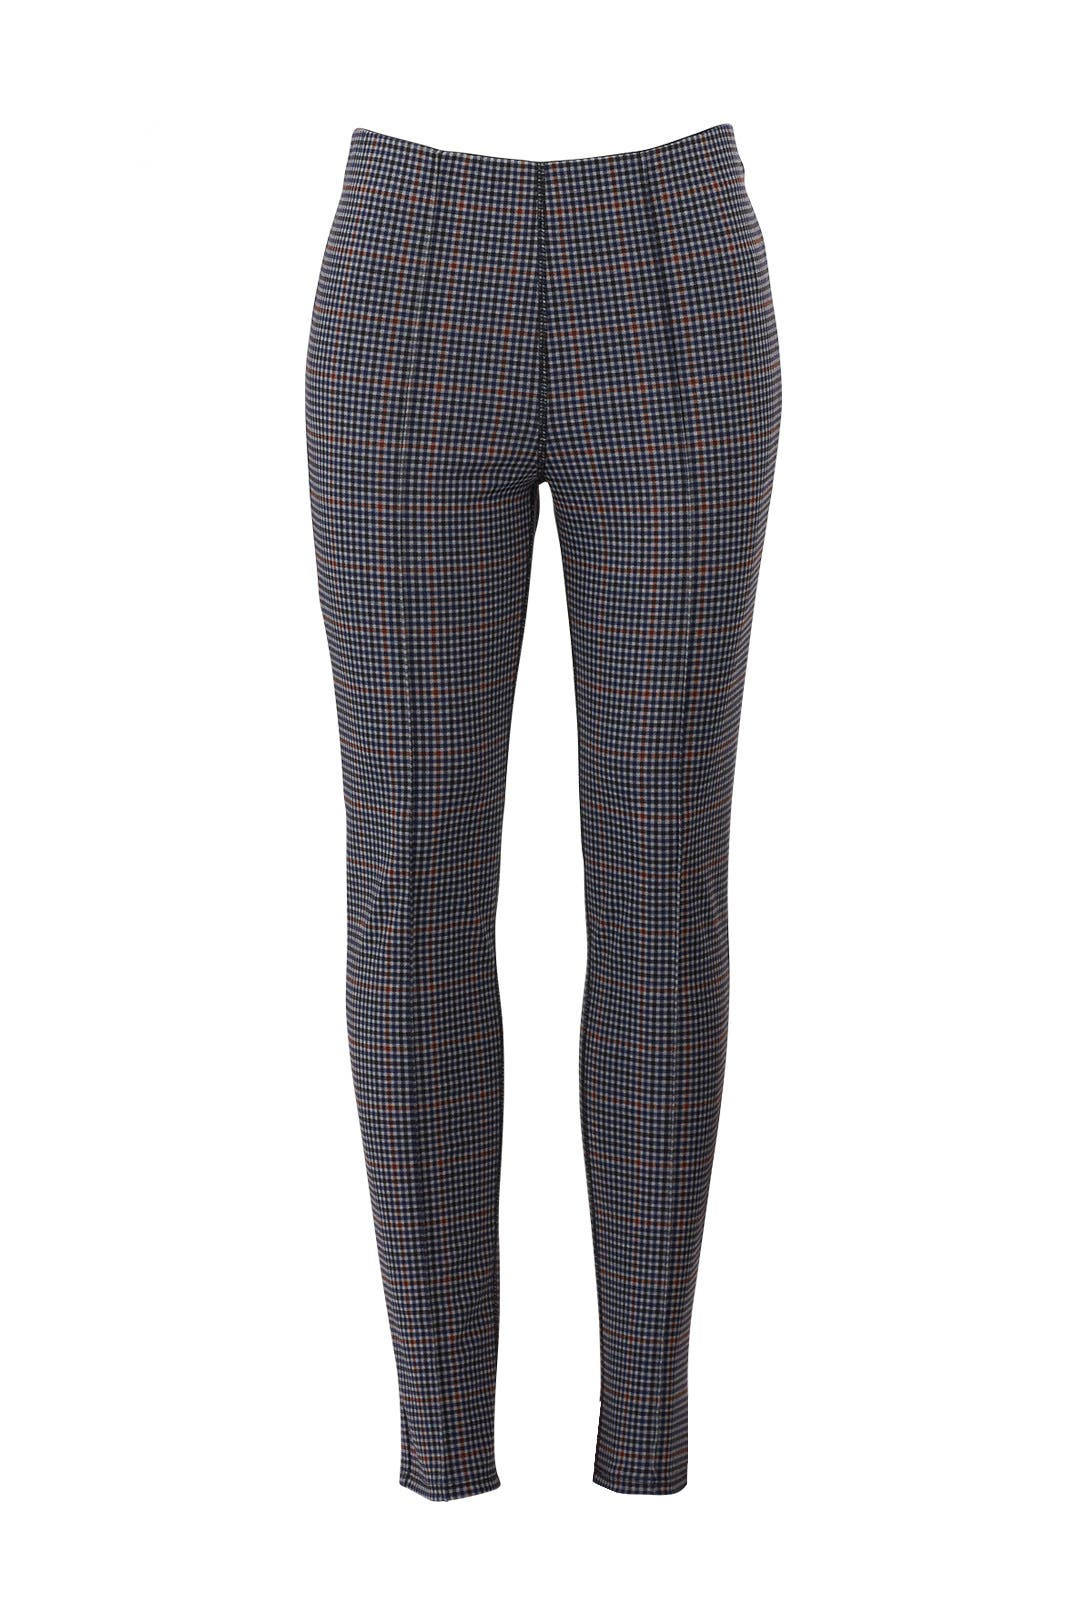 c76072313c2a2 Pintuck Crop Leggings by Sanctuary for $30   Rent the Runway